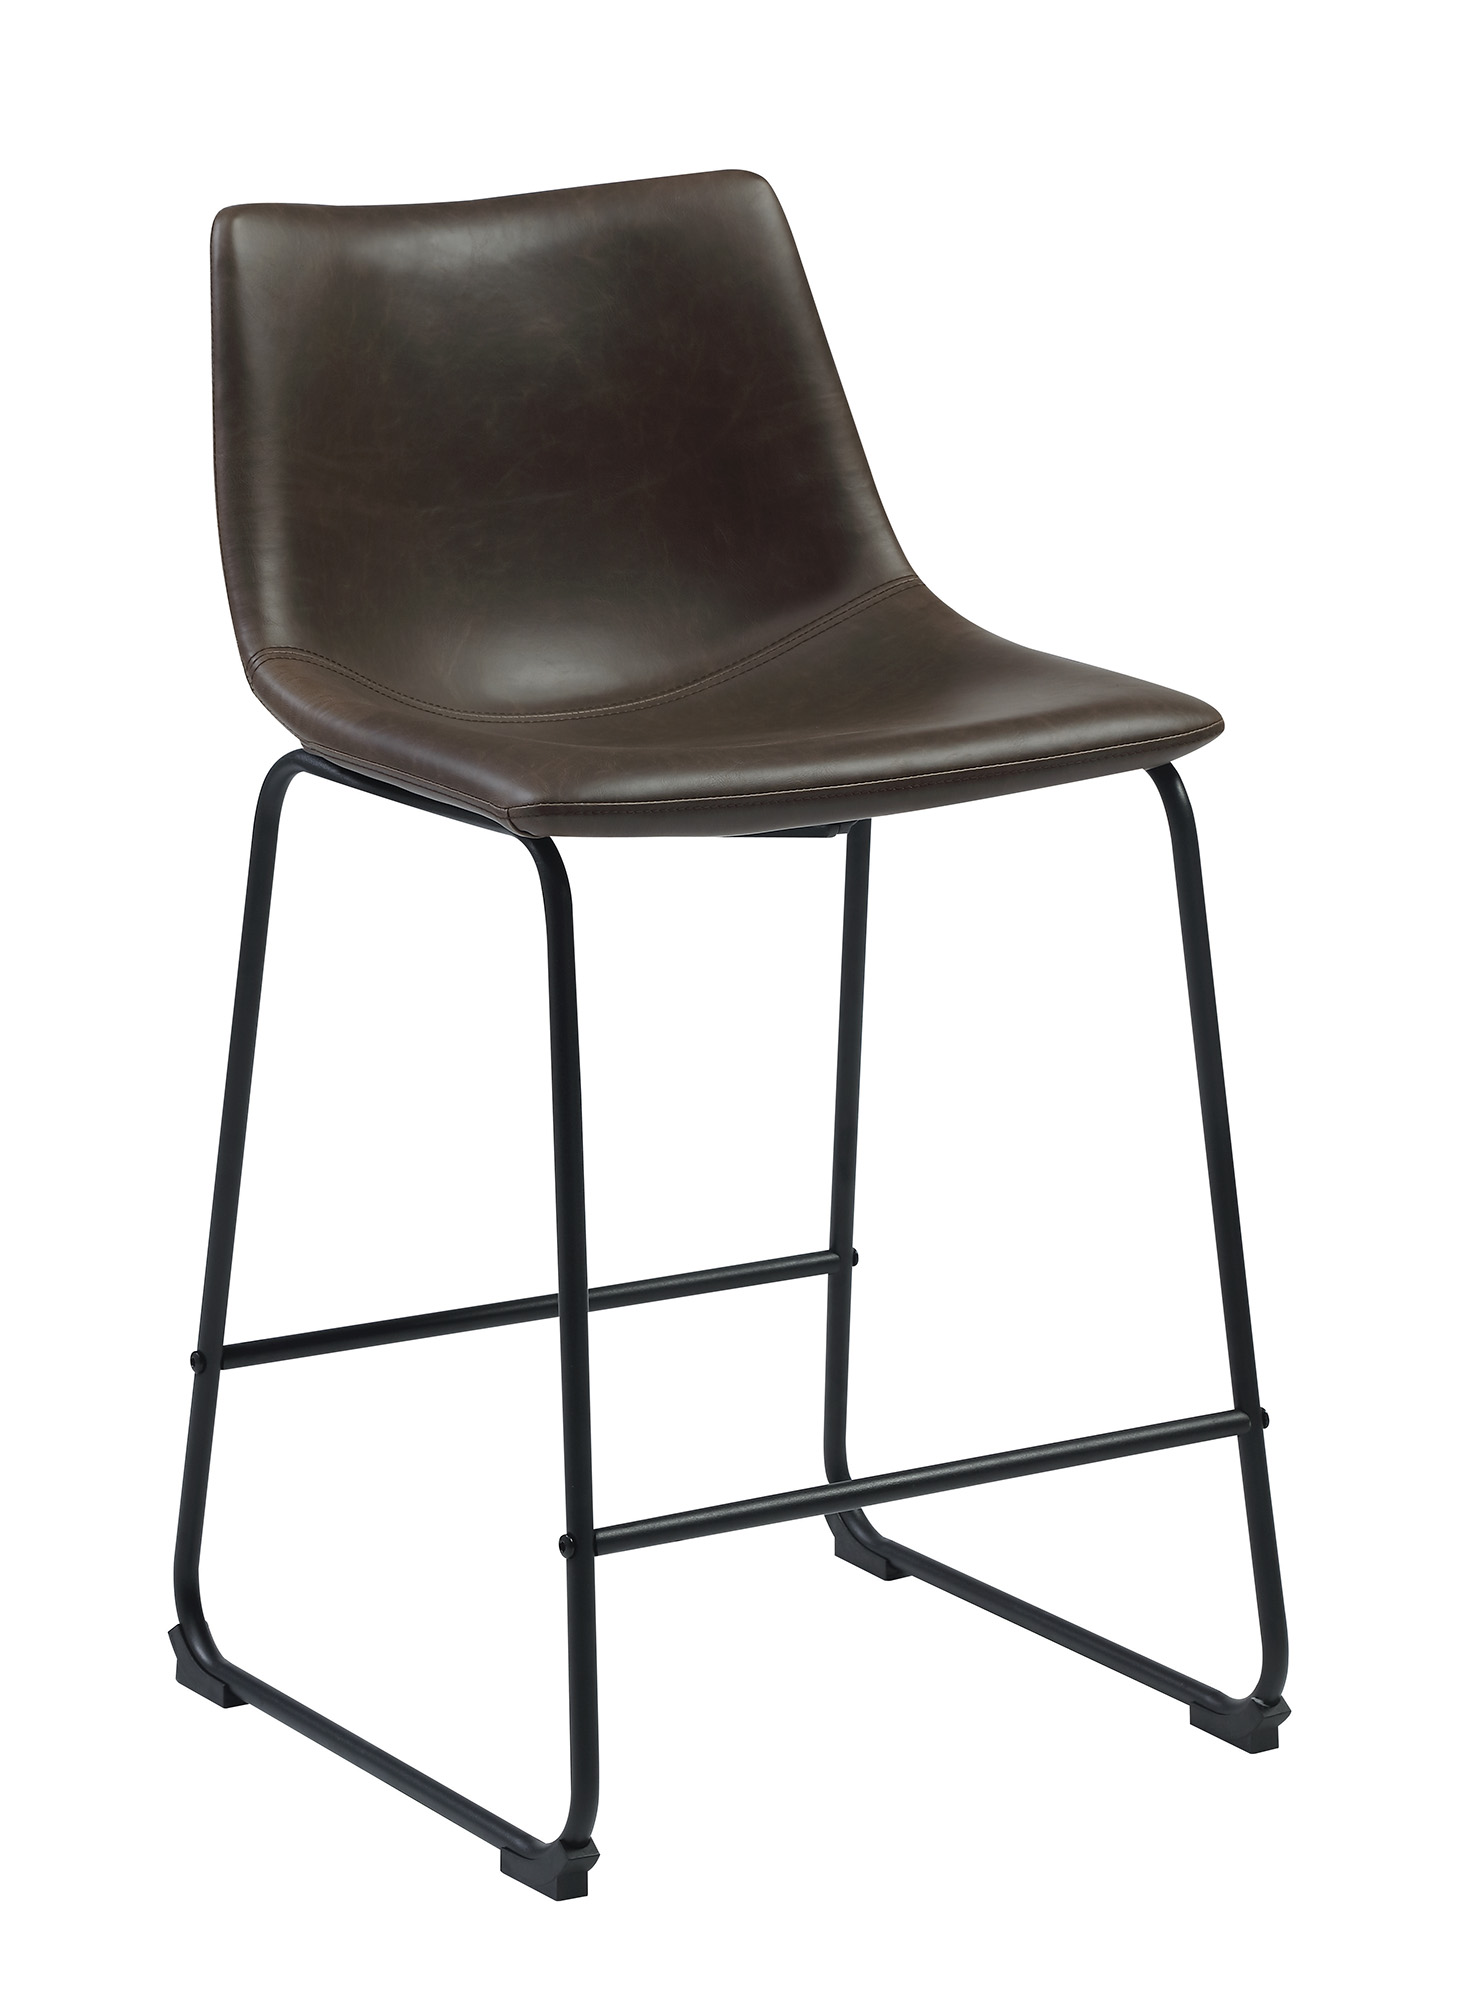 Strange Details About Coaster Metal And Leatherette Bar Stool With Two Tone Brown Finish 102535 Dailytribune Chair Design For Home Dailytribuneorg